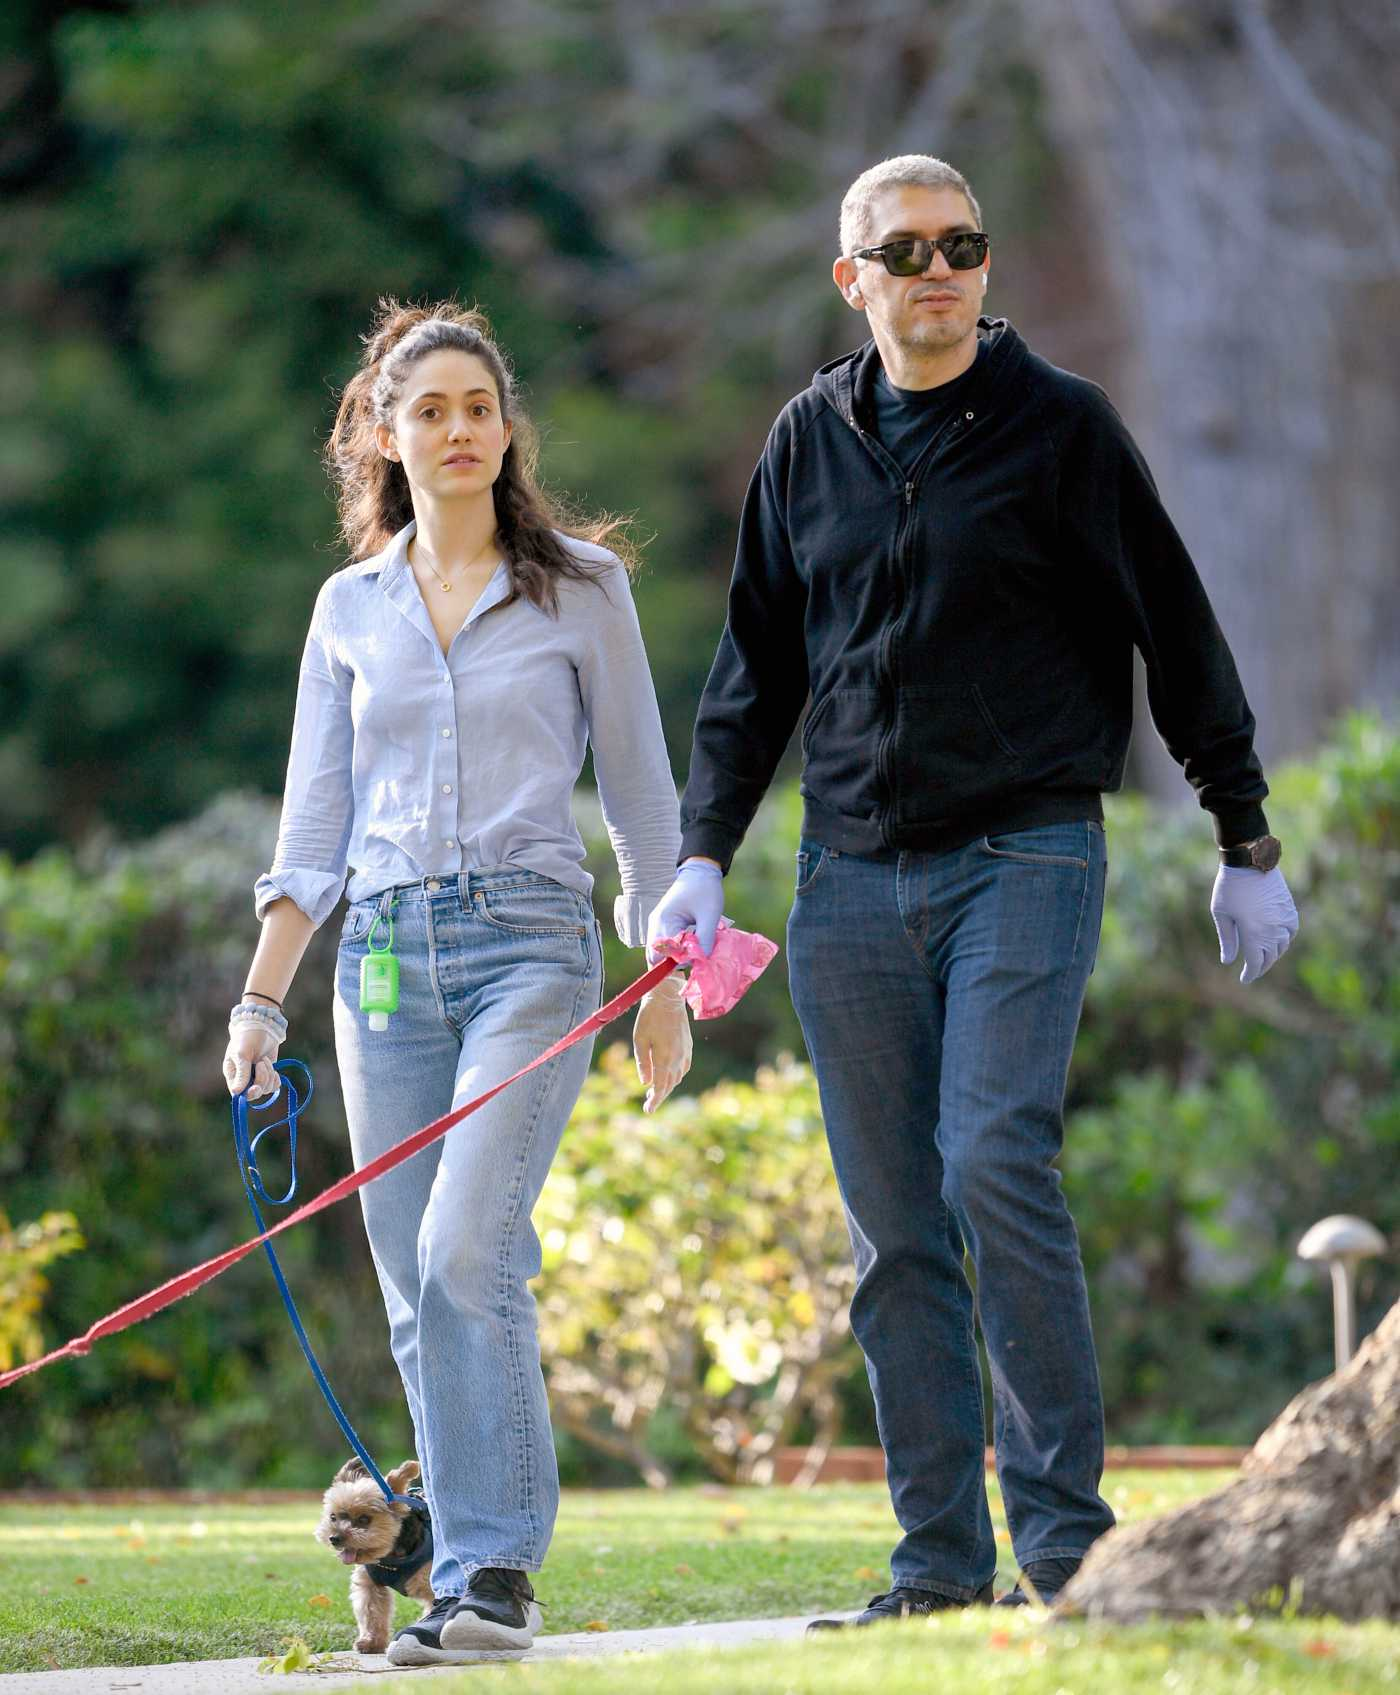 Emmy Rossum in a Gray Shirt Was Seen Out with Sam Esmail in Los Angeles 04/01/2020